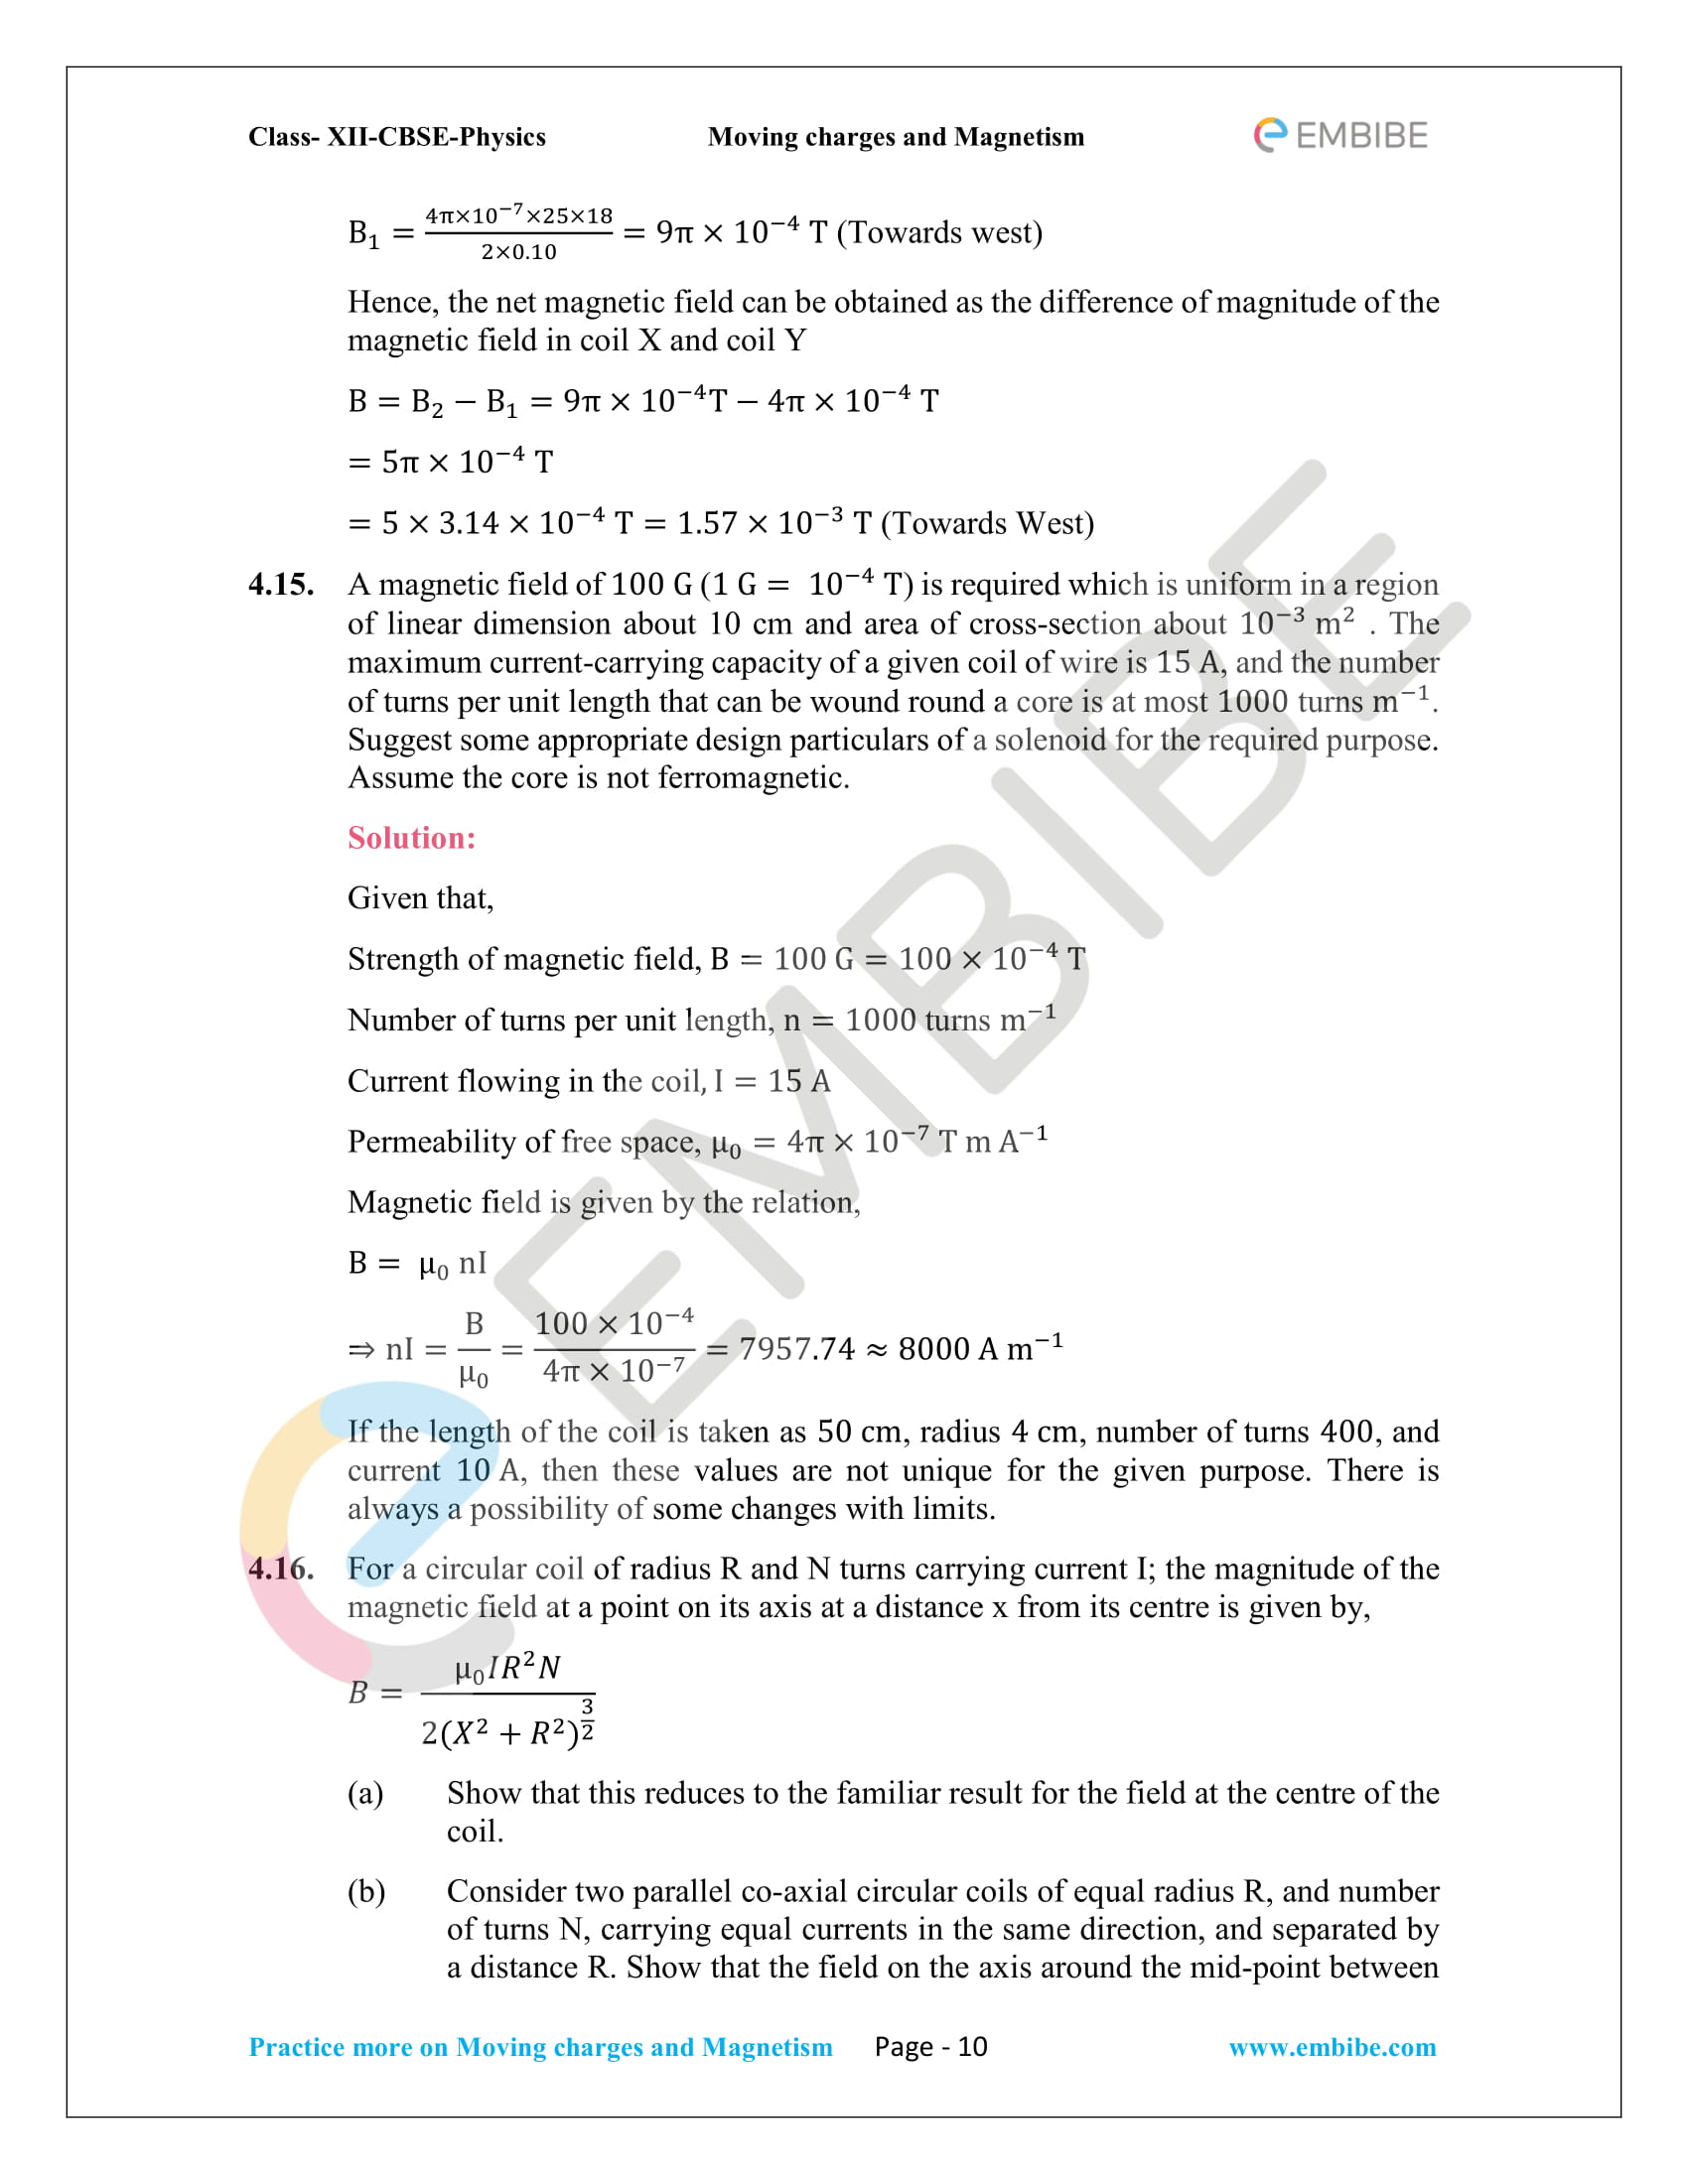 NCERT_Grade 12_Physics_Ch_04_Moving Charges and Magnetism-10